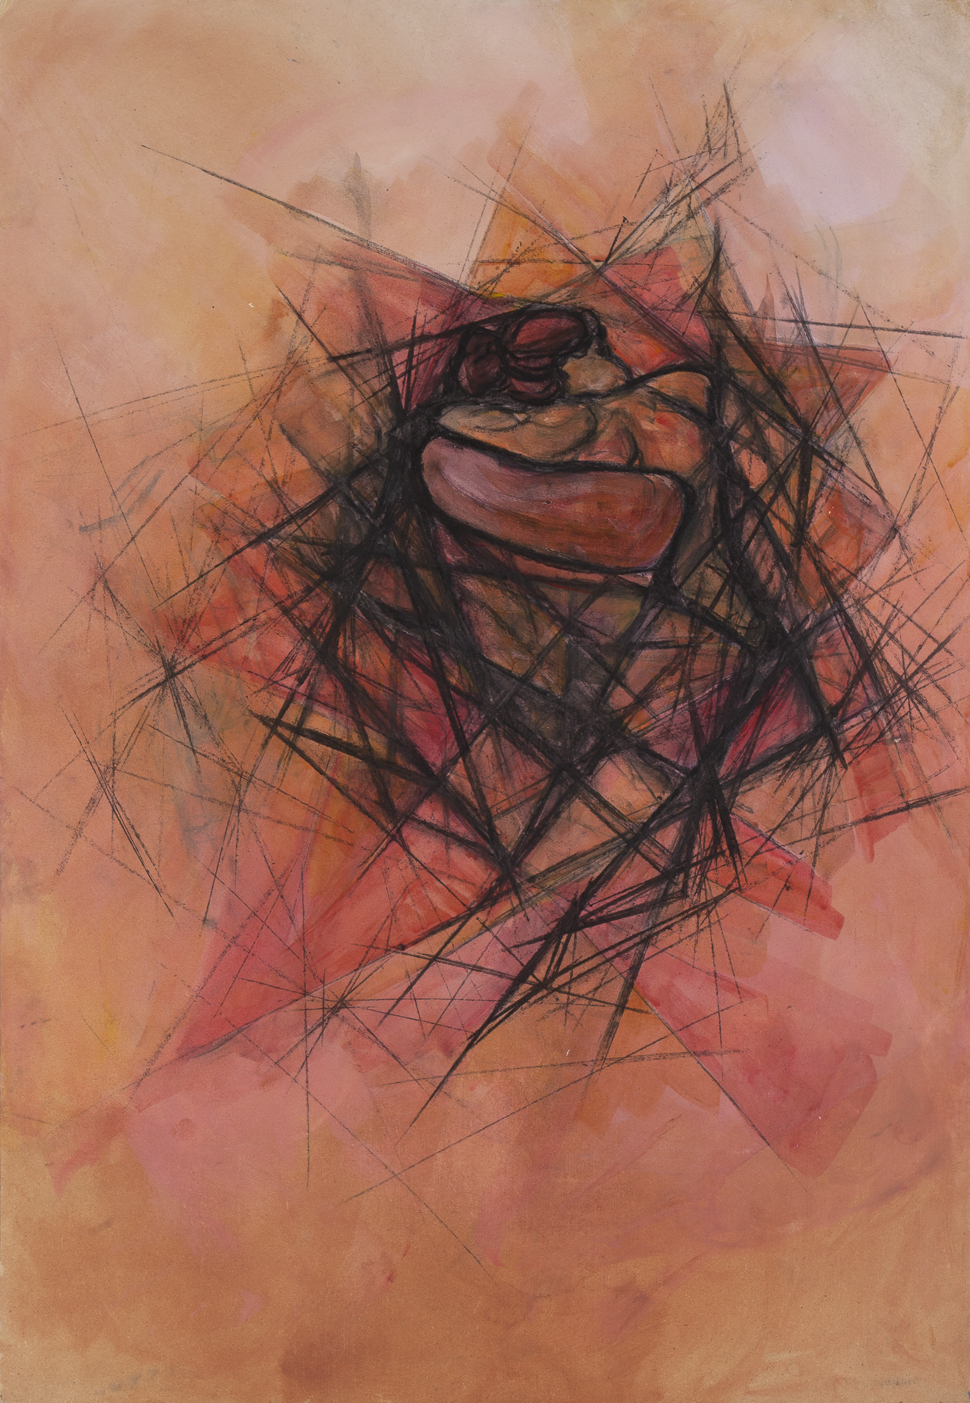 Diana Antohe